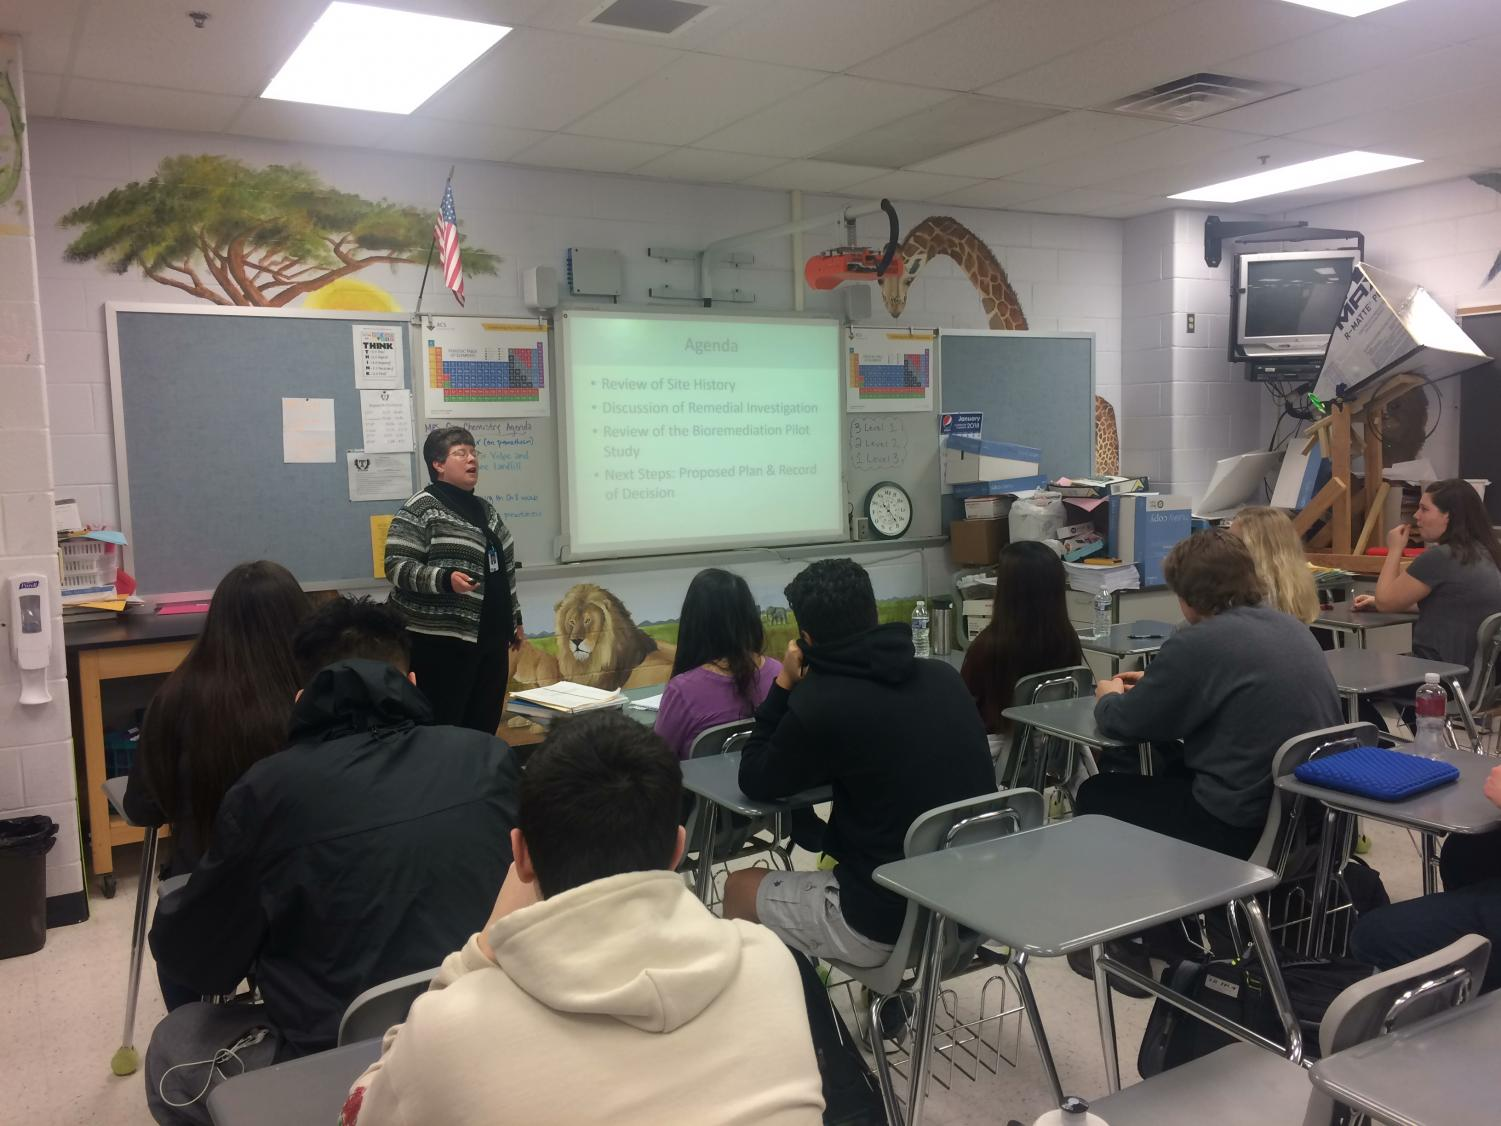 Supervisor Volpe visited science classes to discuss local issues.